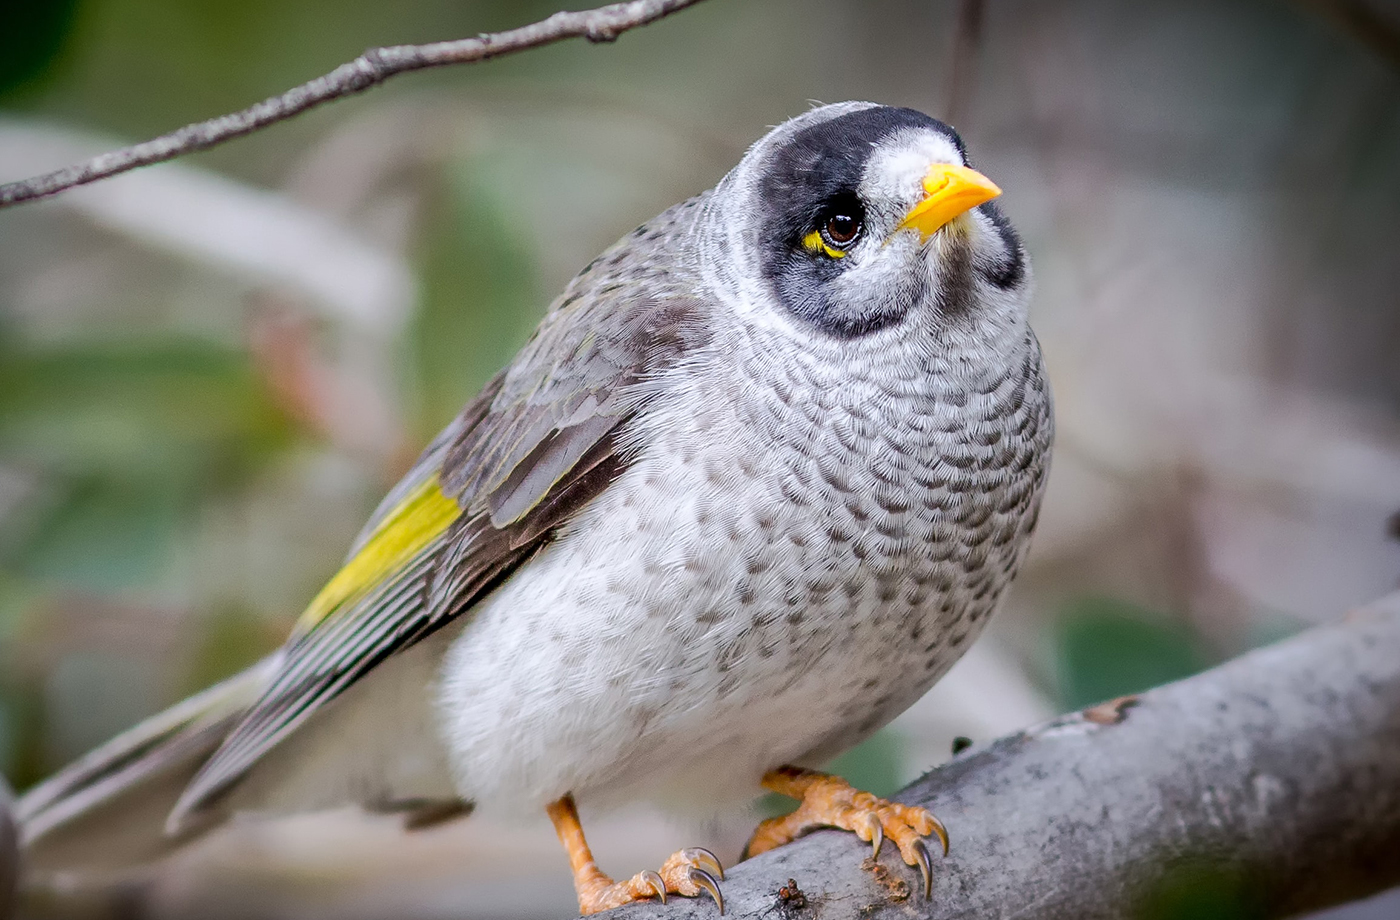 A grey bird with yellow tail and beak